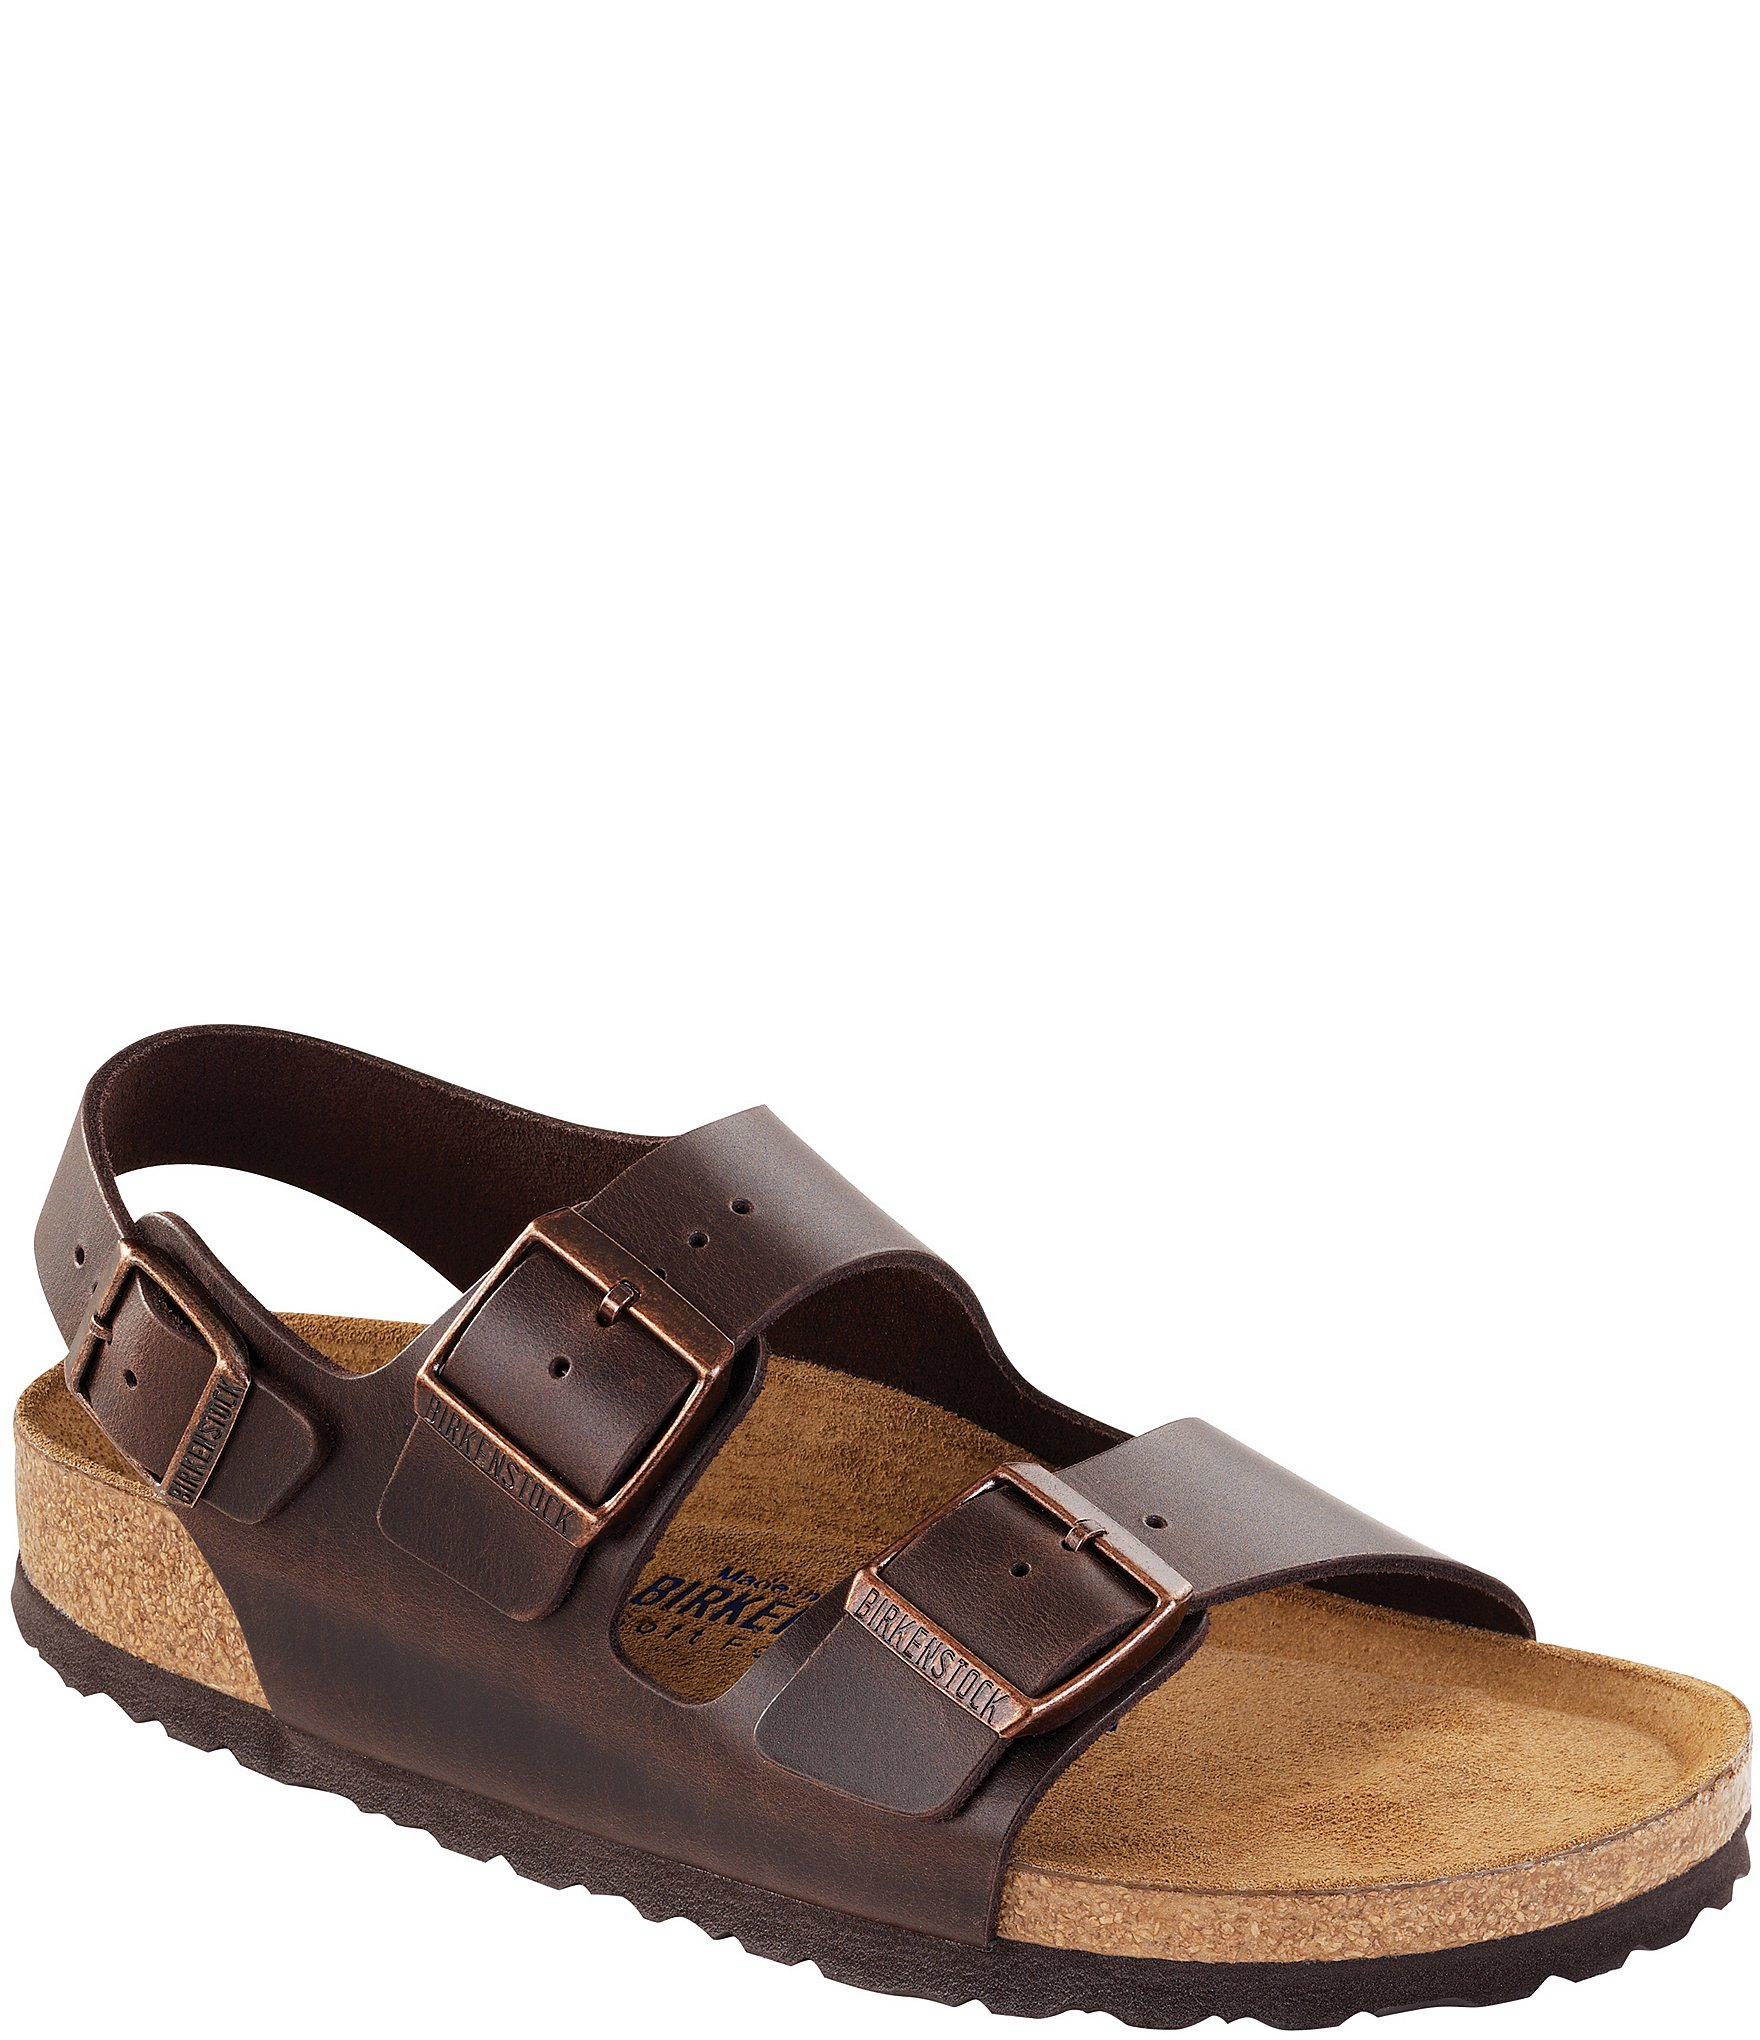 8f44c5a4c0c8 Birkenstock Men s Milano Leather Double Banded Slingback Sandals ...